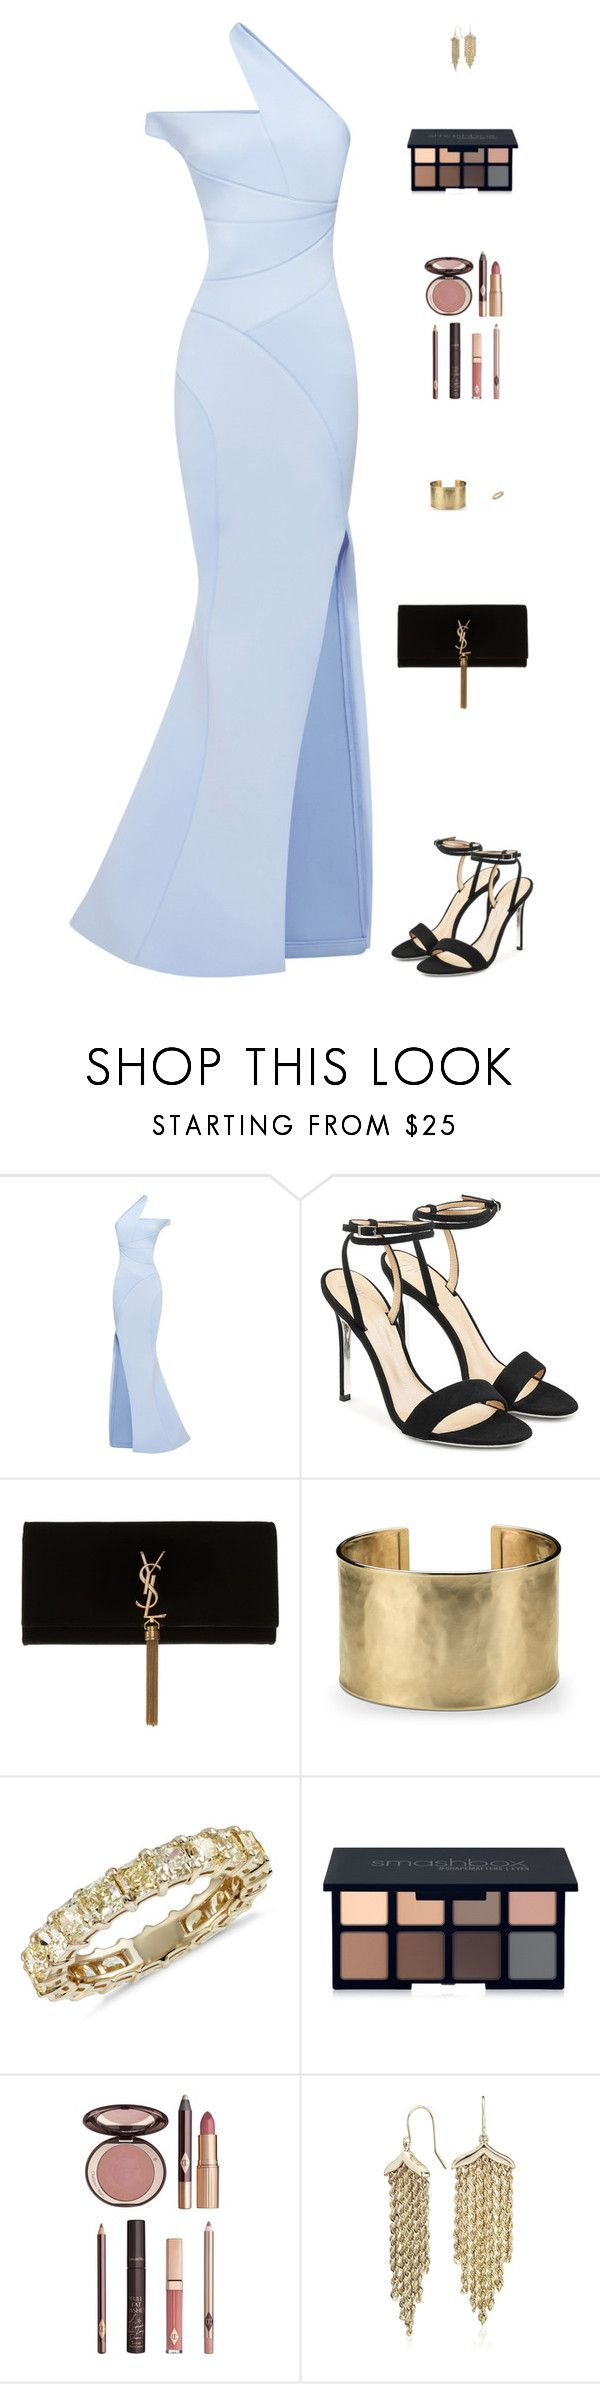 """Untitled #5010"" by mdmsb on Polyvore featuring Giuseppe Zanotti, Yves Saint Laurent, Blue Nile, Smashbox and Charlotte Tilbury"